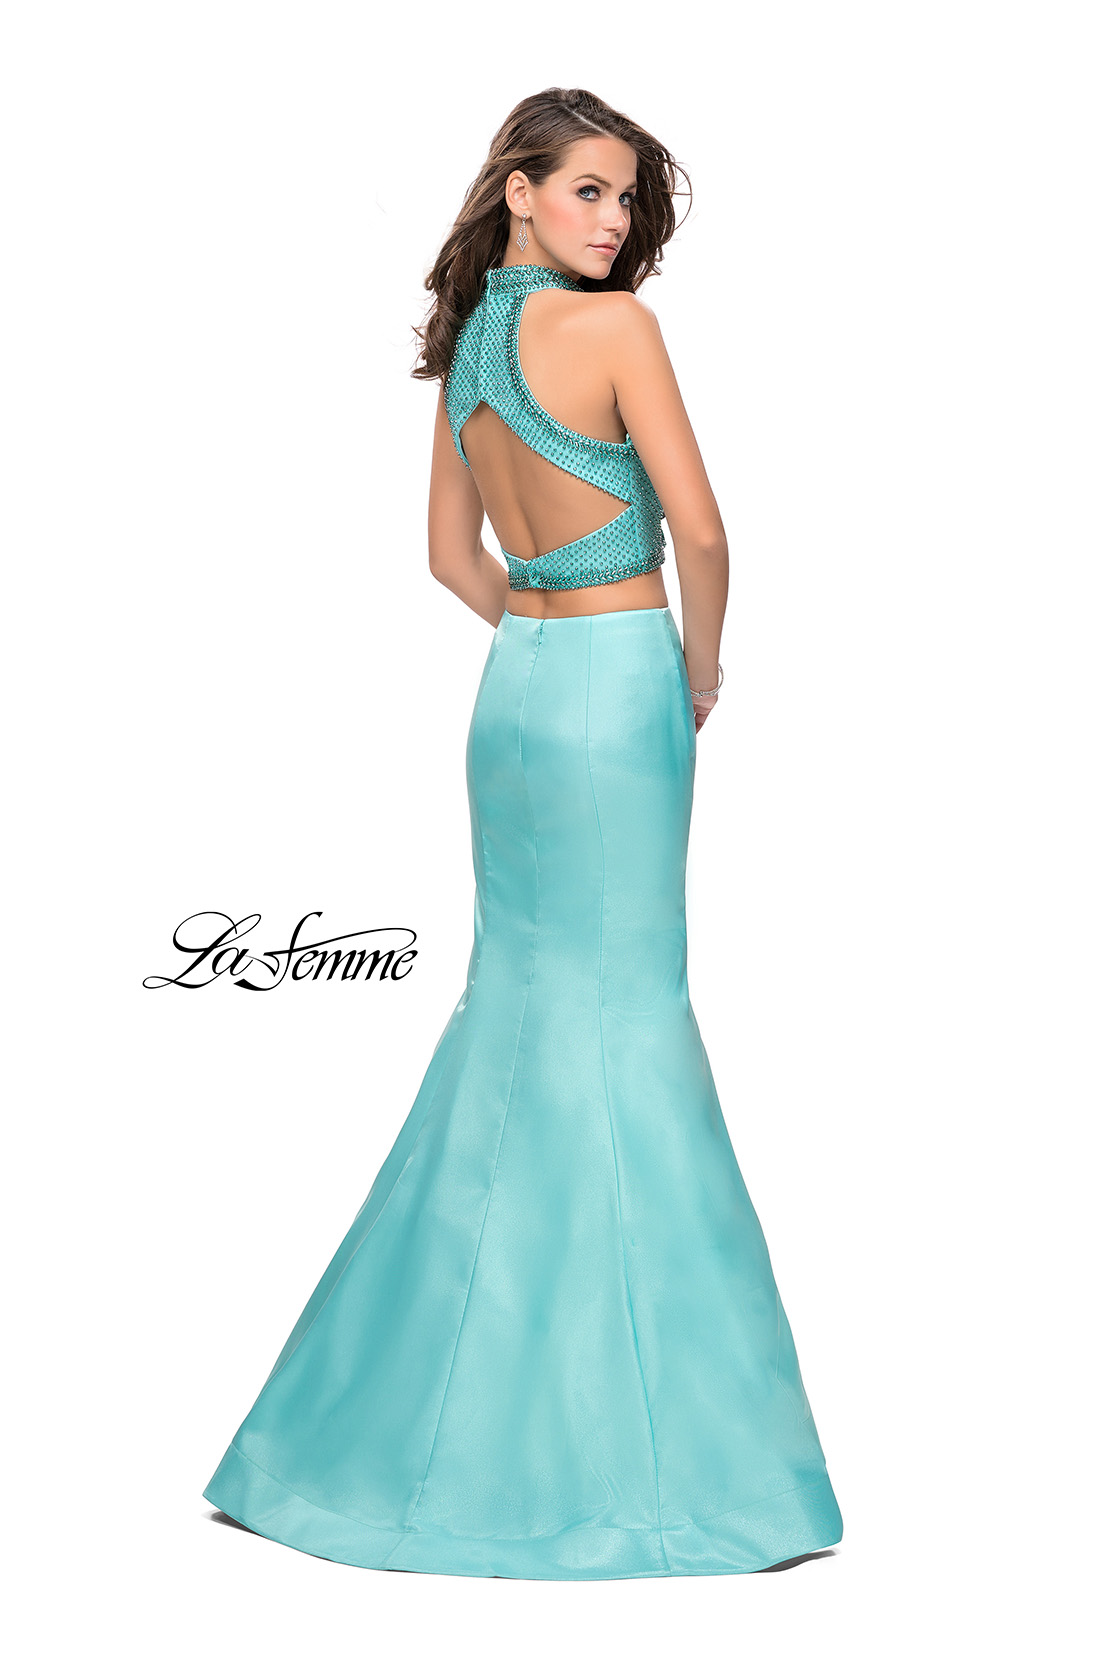 Comfortable Prom Dresses Nova Scotia Ideas - Wedding Ideas ...